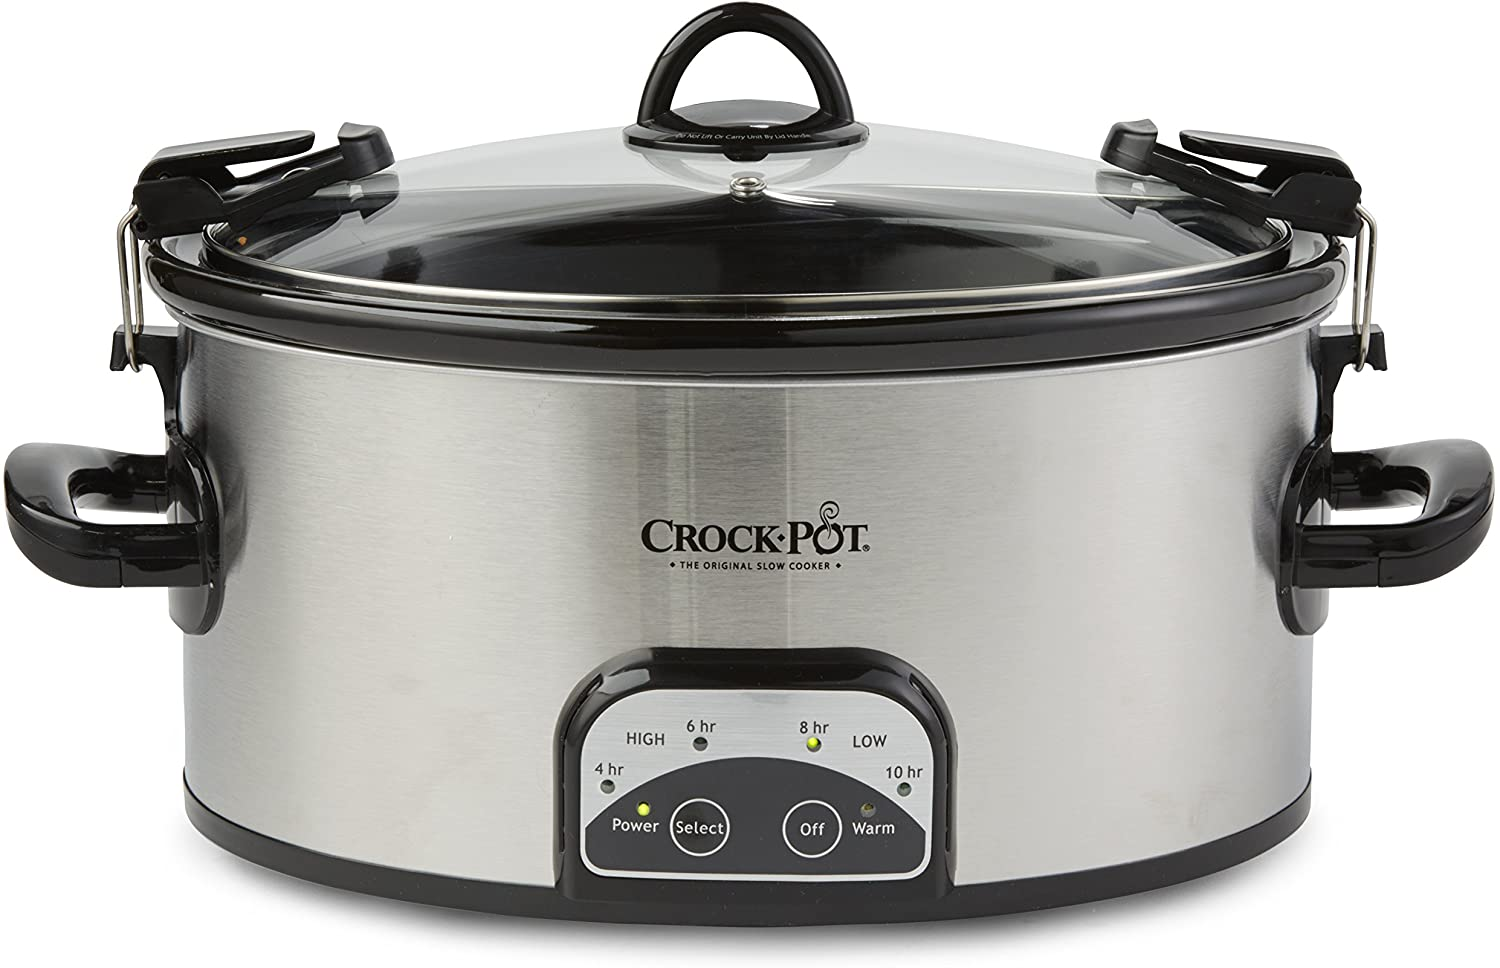 Crock-Pot SCCPVL605-S, 6 Qt, Stainless